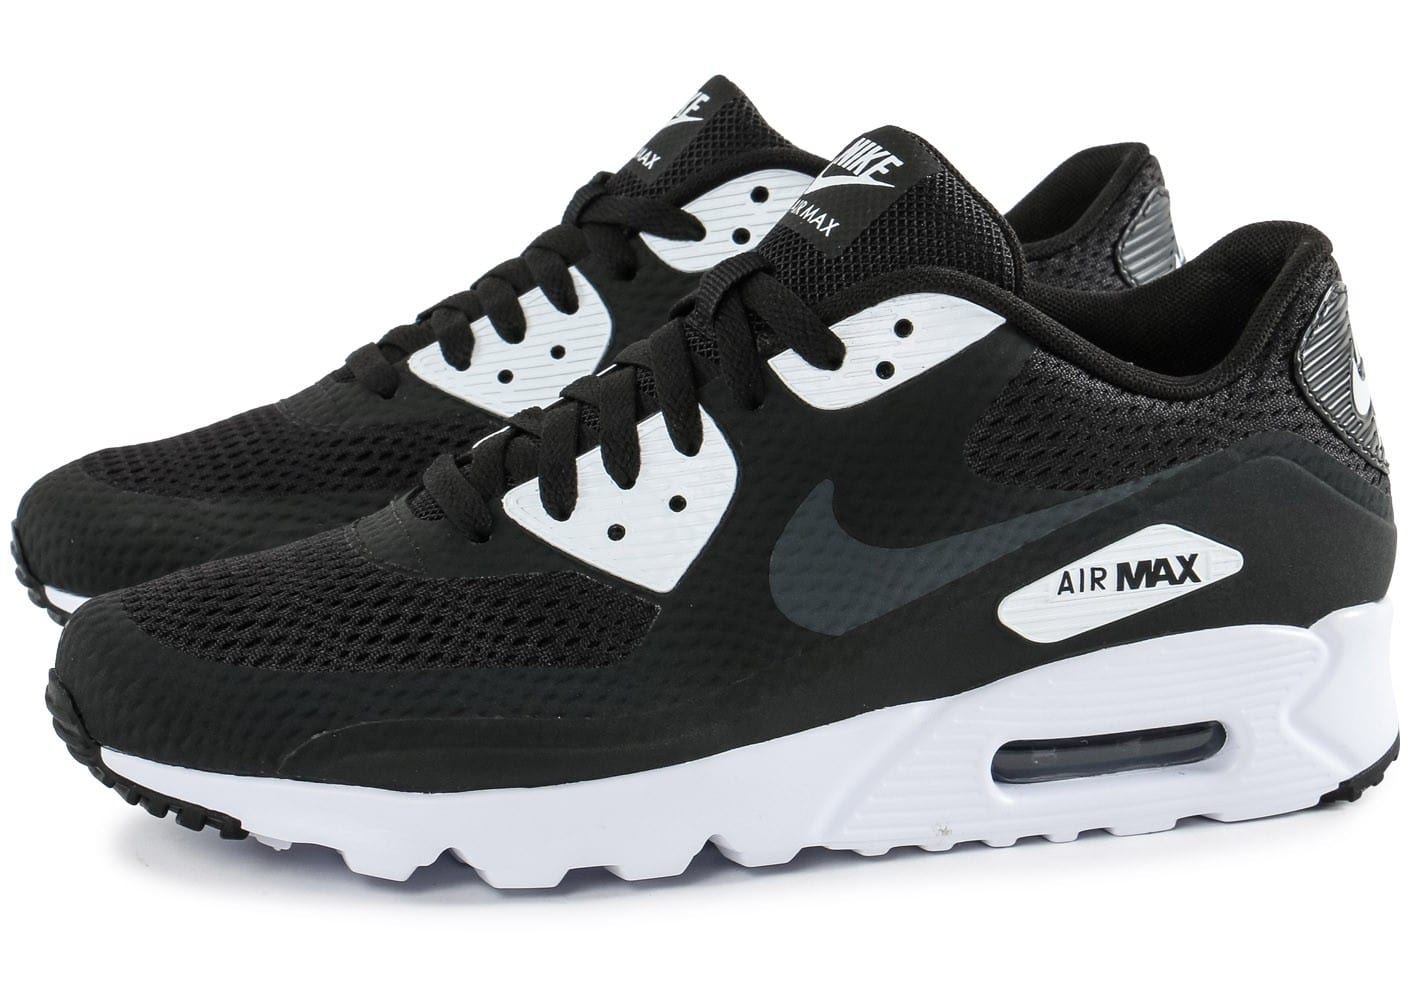 Nike Air Max 90 Ultra Essential noire et blanche